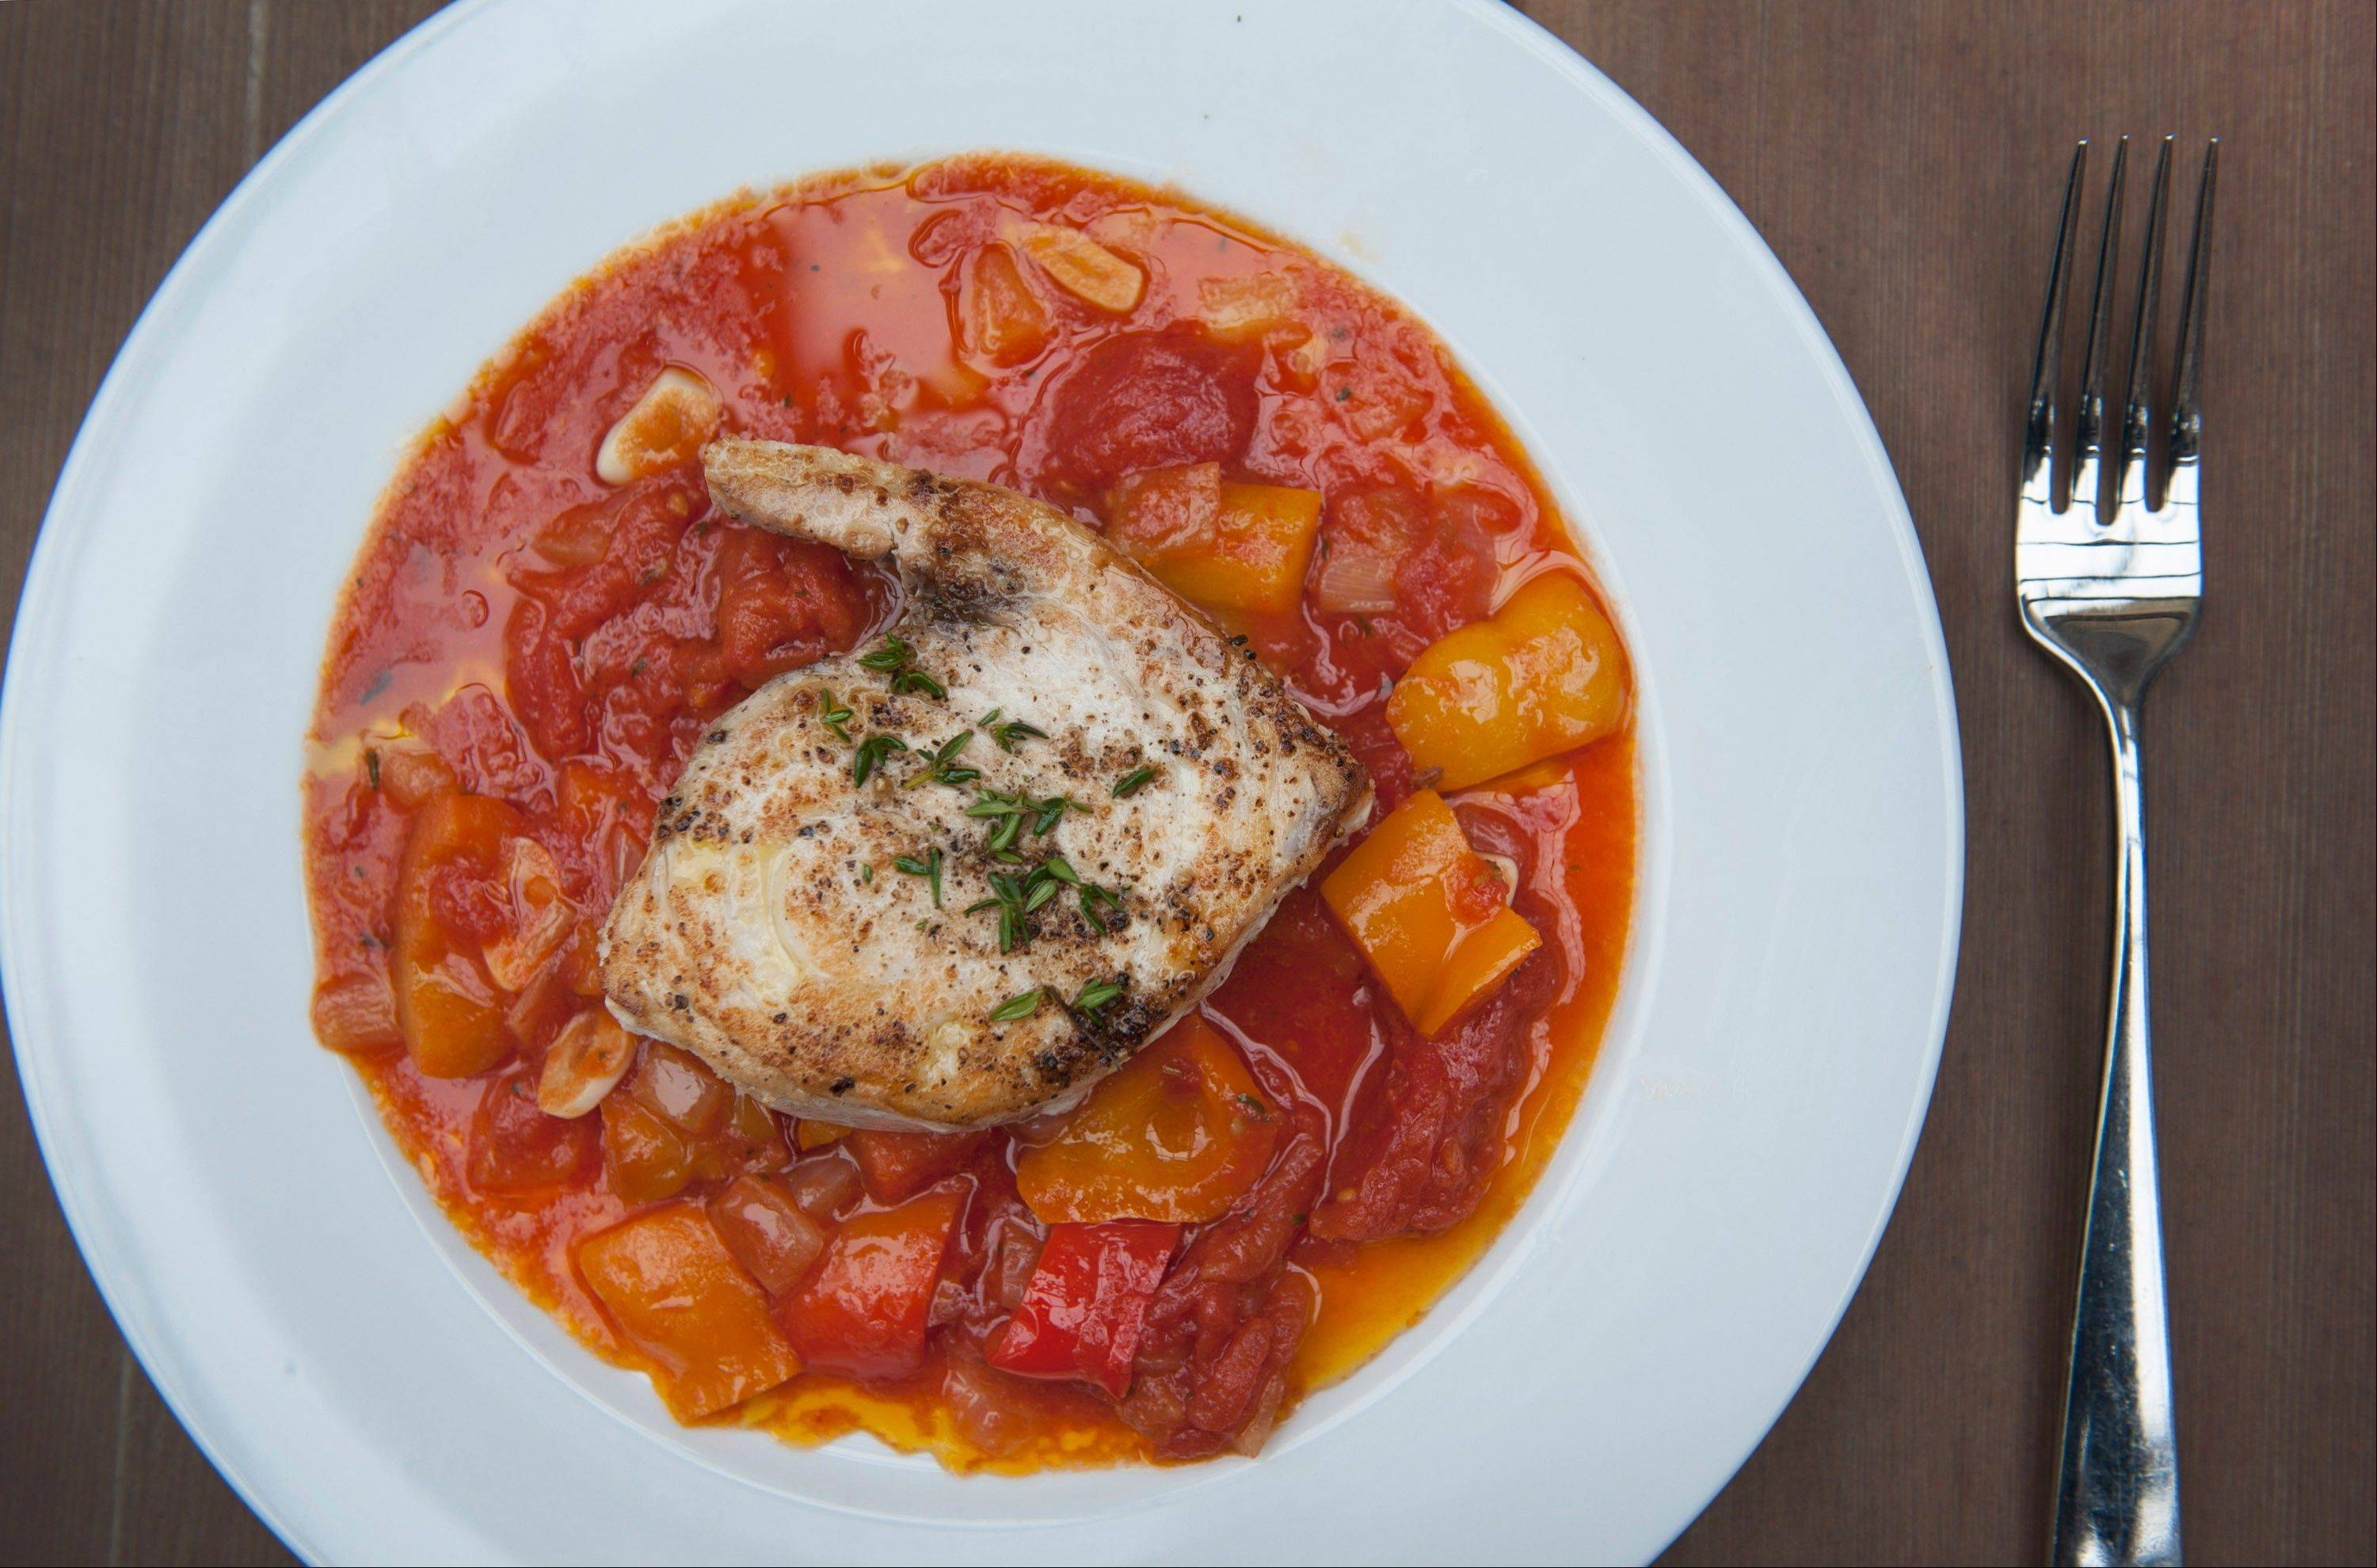 Pan-Seared Swordfish Steaks With Orange Piperade. Piperade is a Basque tomato and pepper stew.